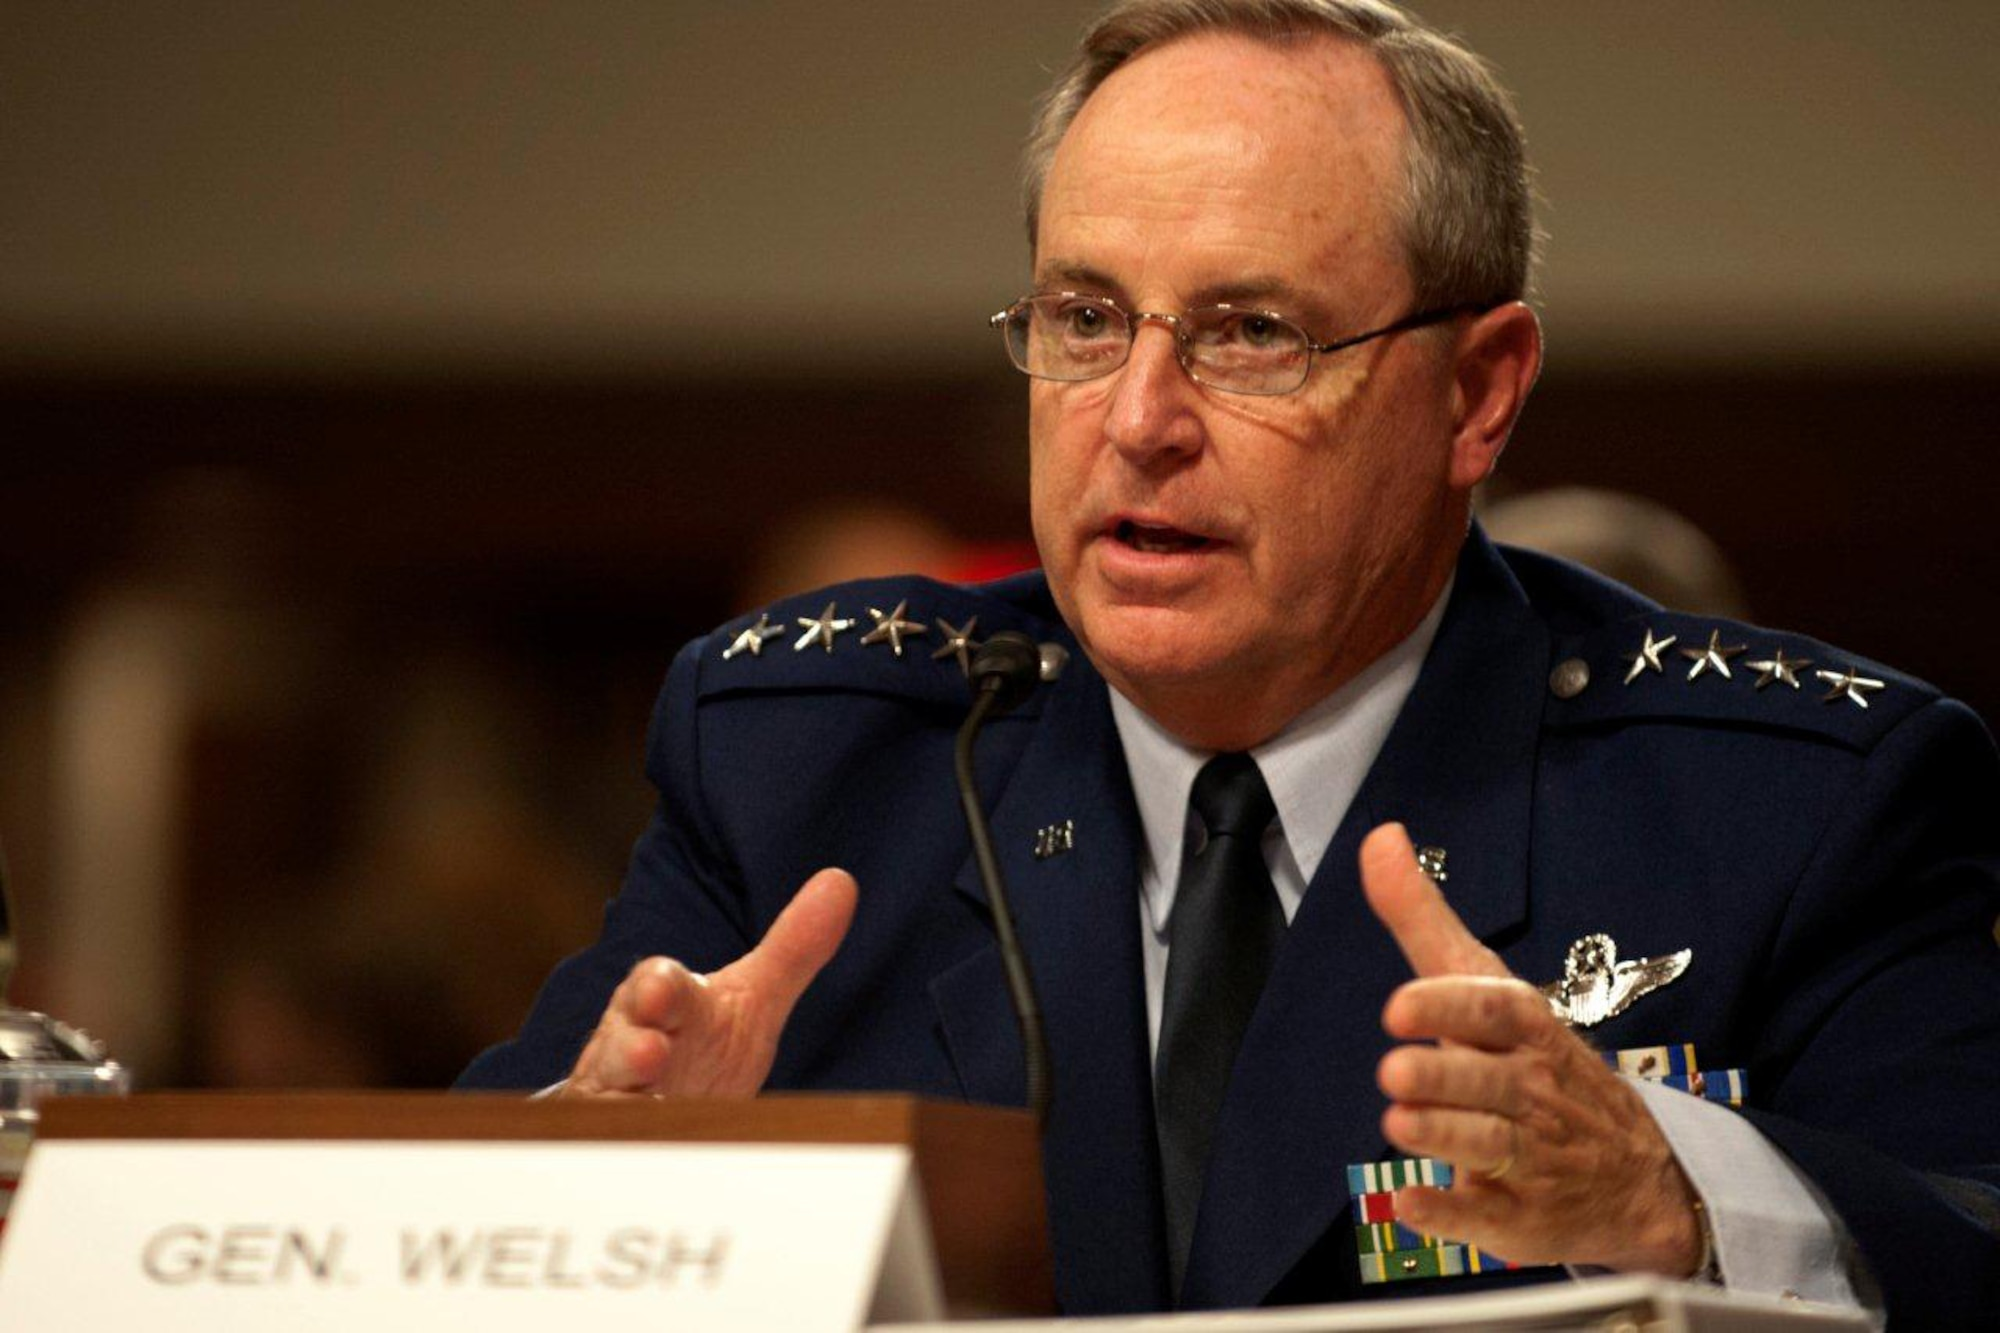 Gen. Mark A. Welsh III, Air Force chief of staff, gives opening remarks on the impacts of sequestration on the Department of Defense during a Senate Armed Services Committee hearing, Nov. 7, 2013, Washington, D.C.  Among other concerns, Welsh emphasized the danger of having to choose between a ready force today, or a modern force tomorrow.